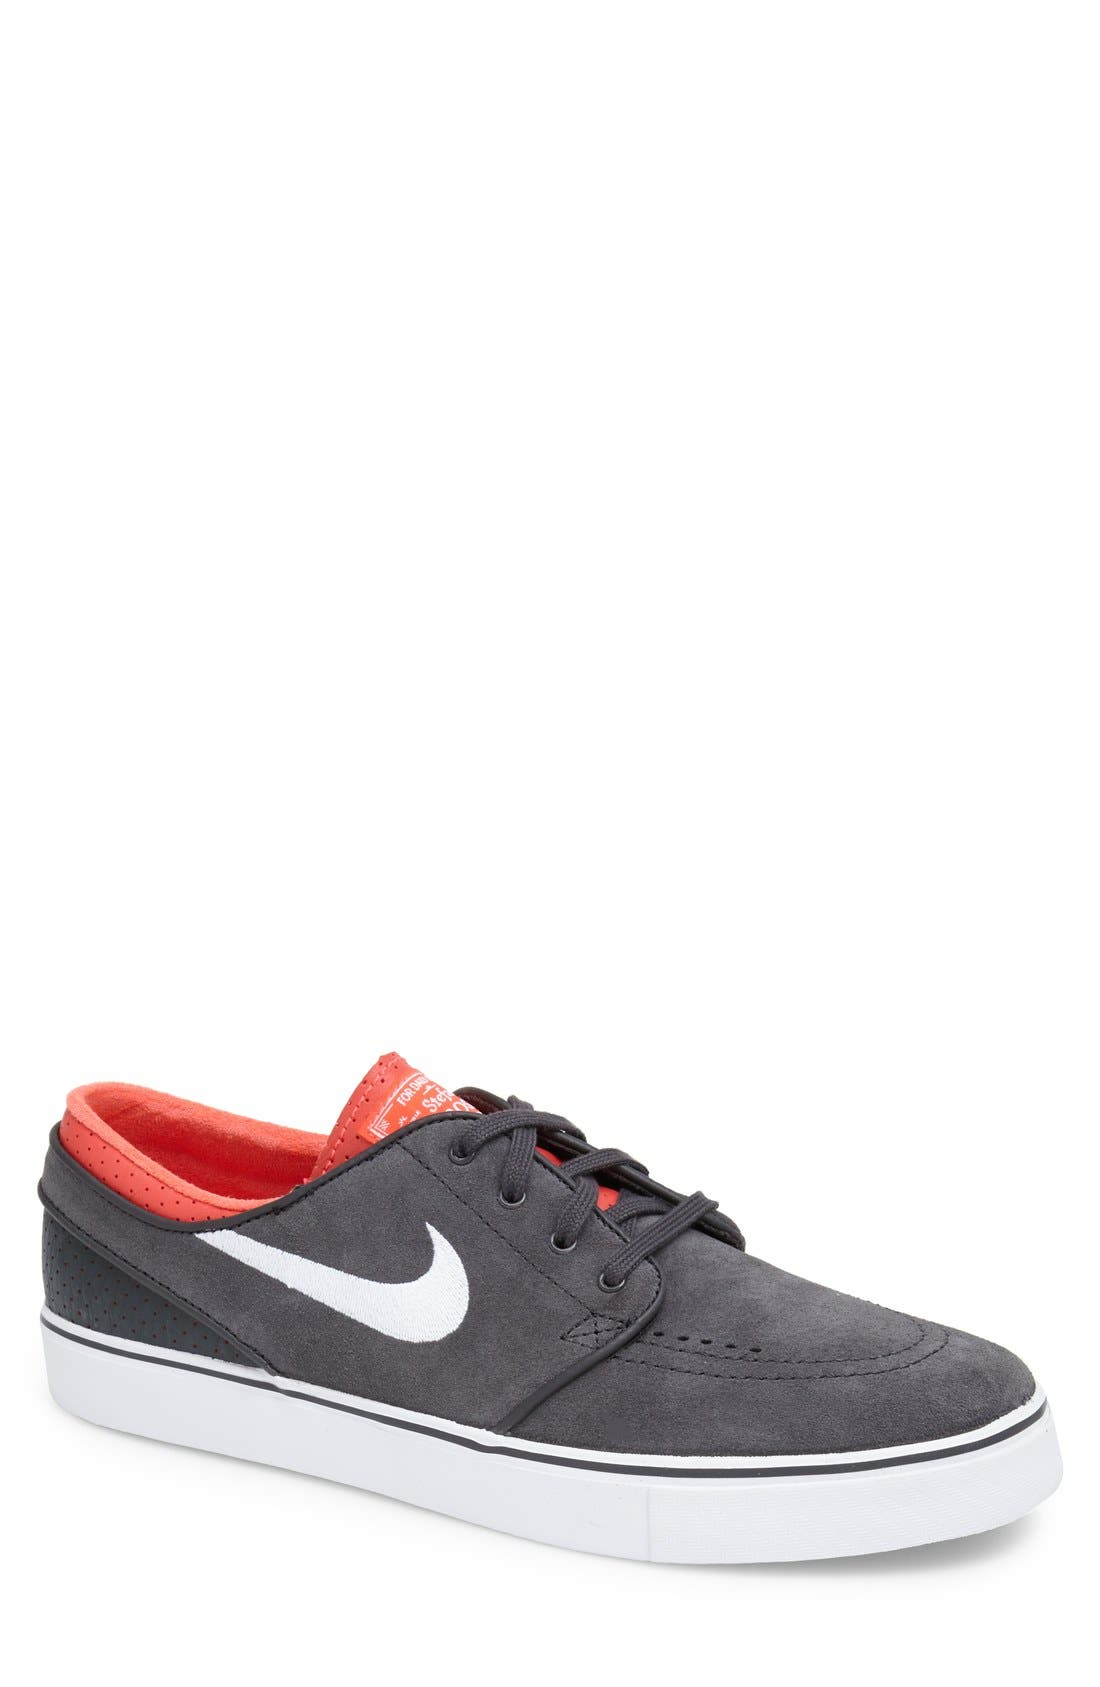 'Zoom - Stefan Janoski' Skate Shoe,                             Main thumbnail 1, color,                             Anthracite/ Red/ Black/ White